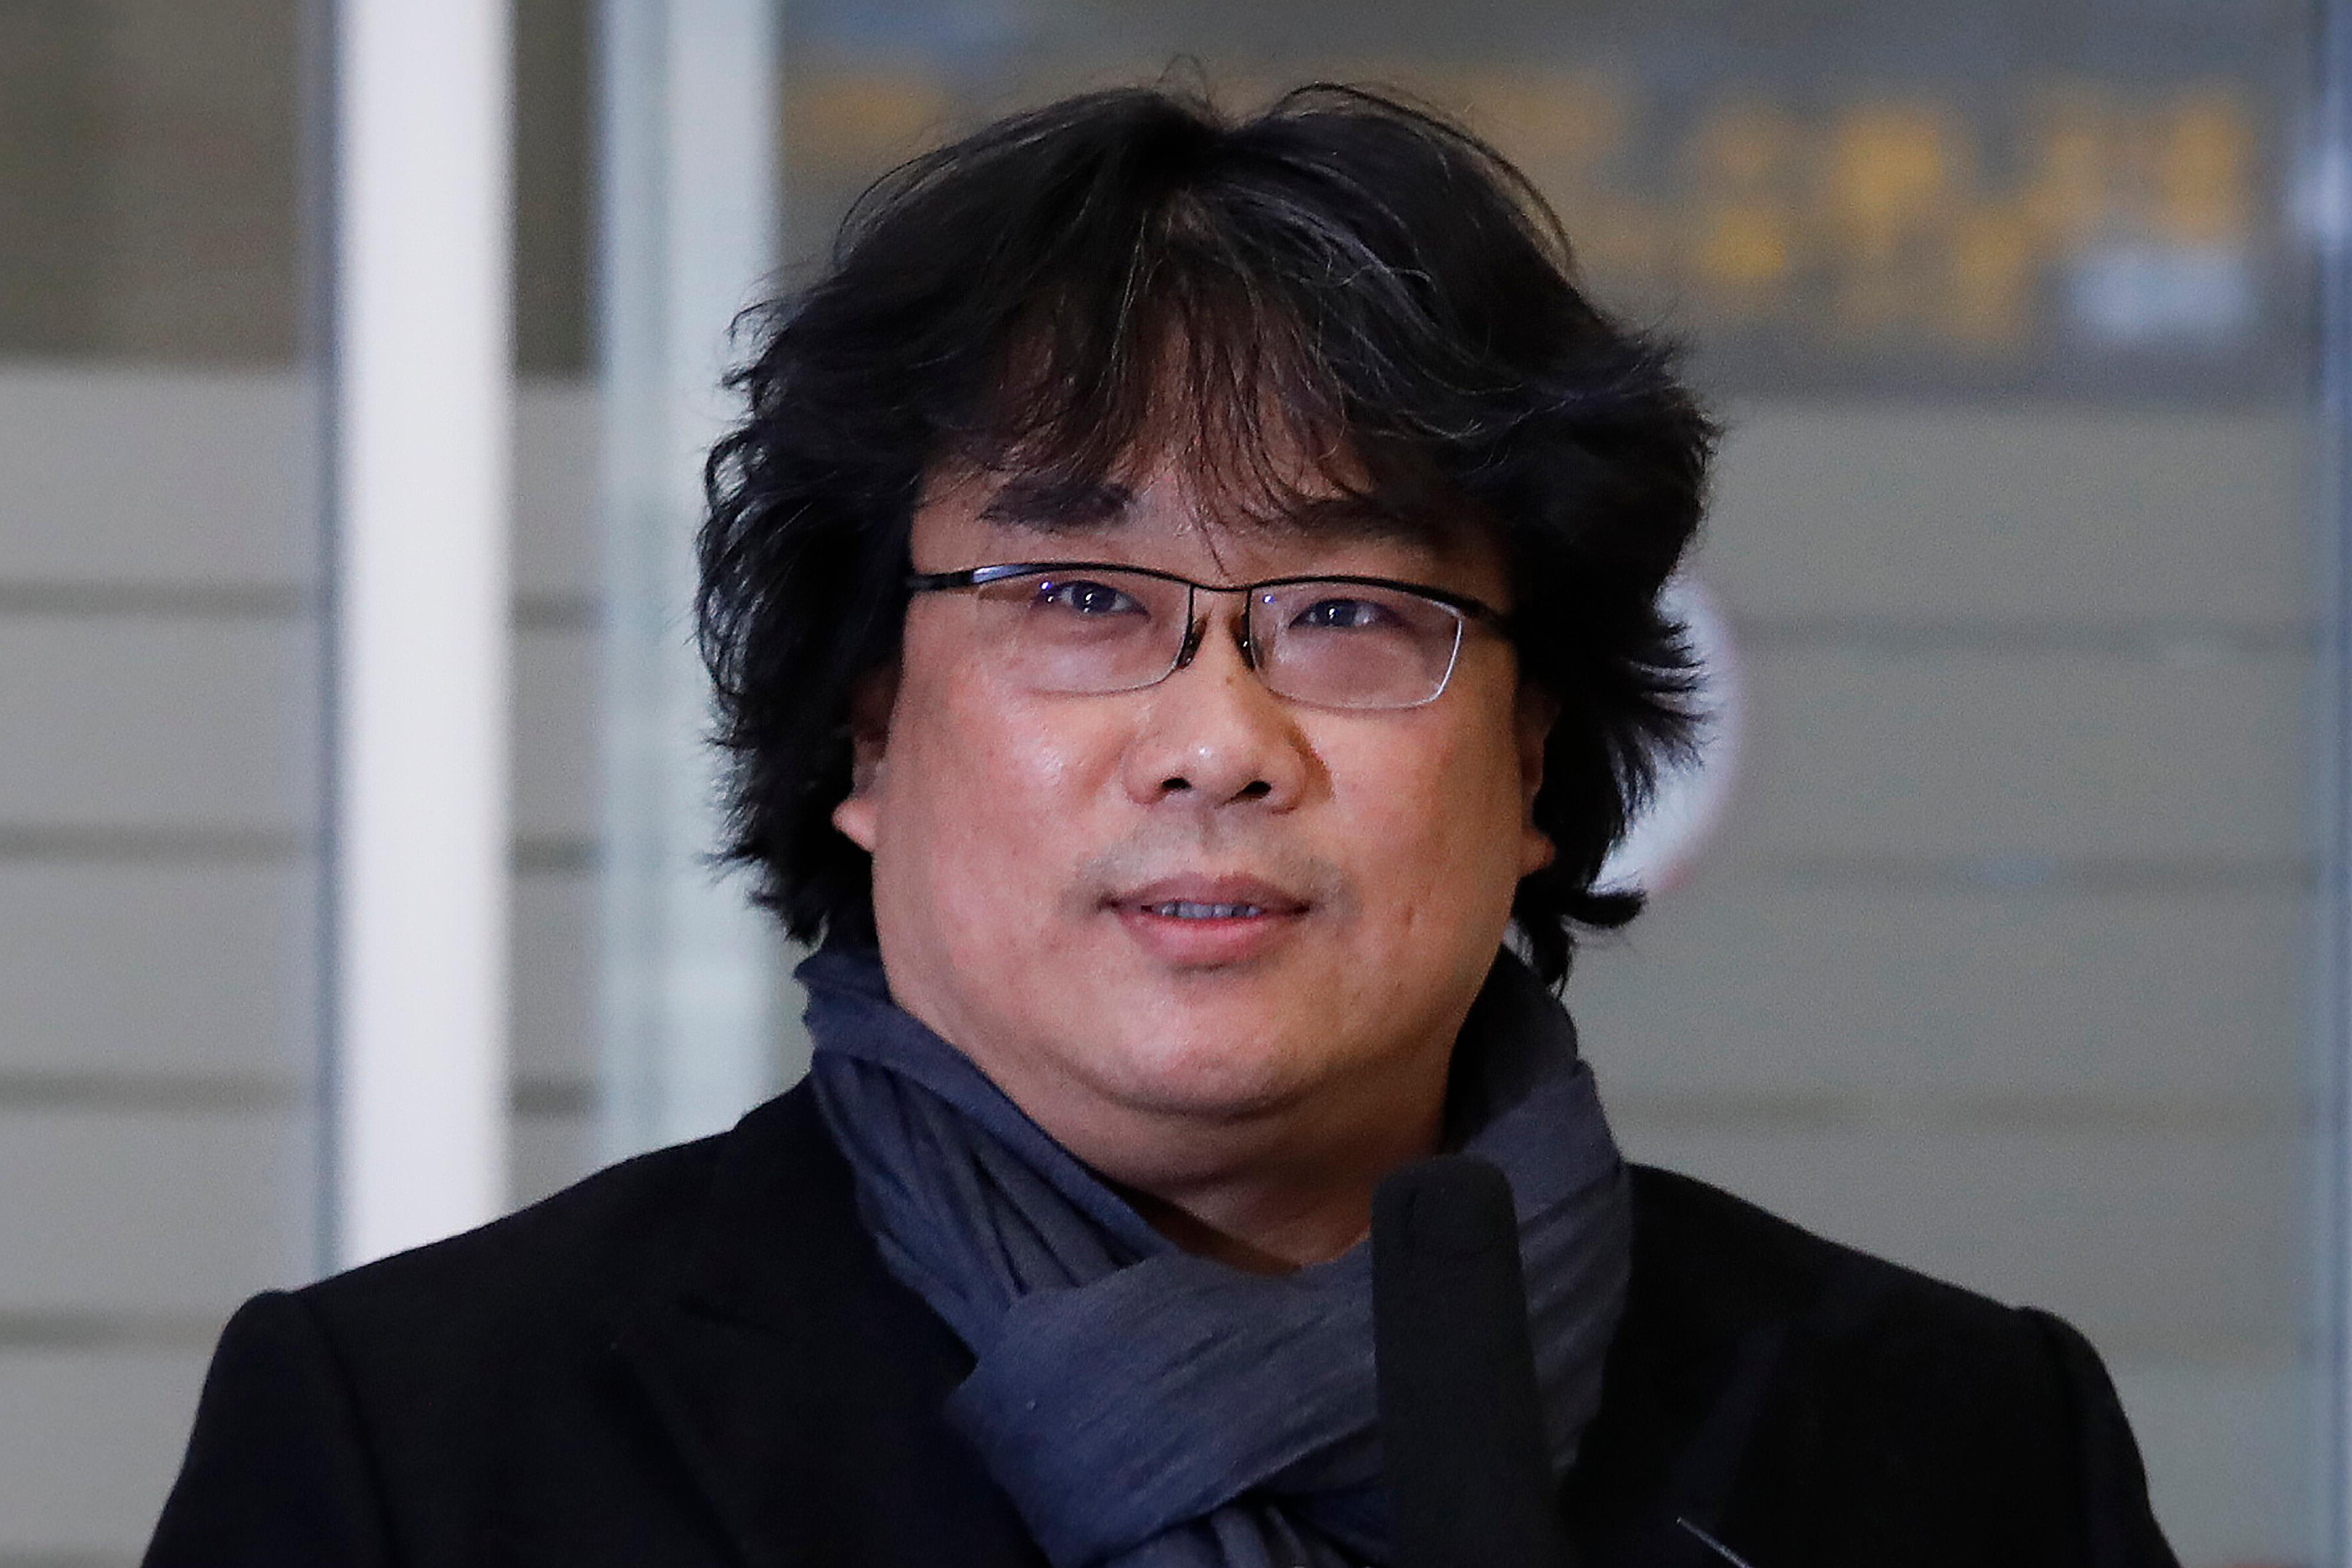 "South Korean director Bong Joon-ho speaks upon his arrival at the Incheon International Airport in Incheon, South Korea, Sunday, Feb. 16, 2020. South Koreans are reveling in writer-director Bong's dark comic thriller, ""Parasite,"" which won this year's Academy Awards for best film and best international feature. The movie itself, however, doesn't put the country in a particularly positive light. (AP Photo/Ahn Young-joon)"